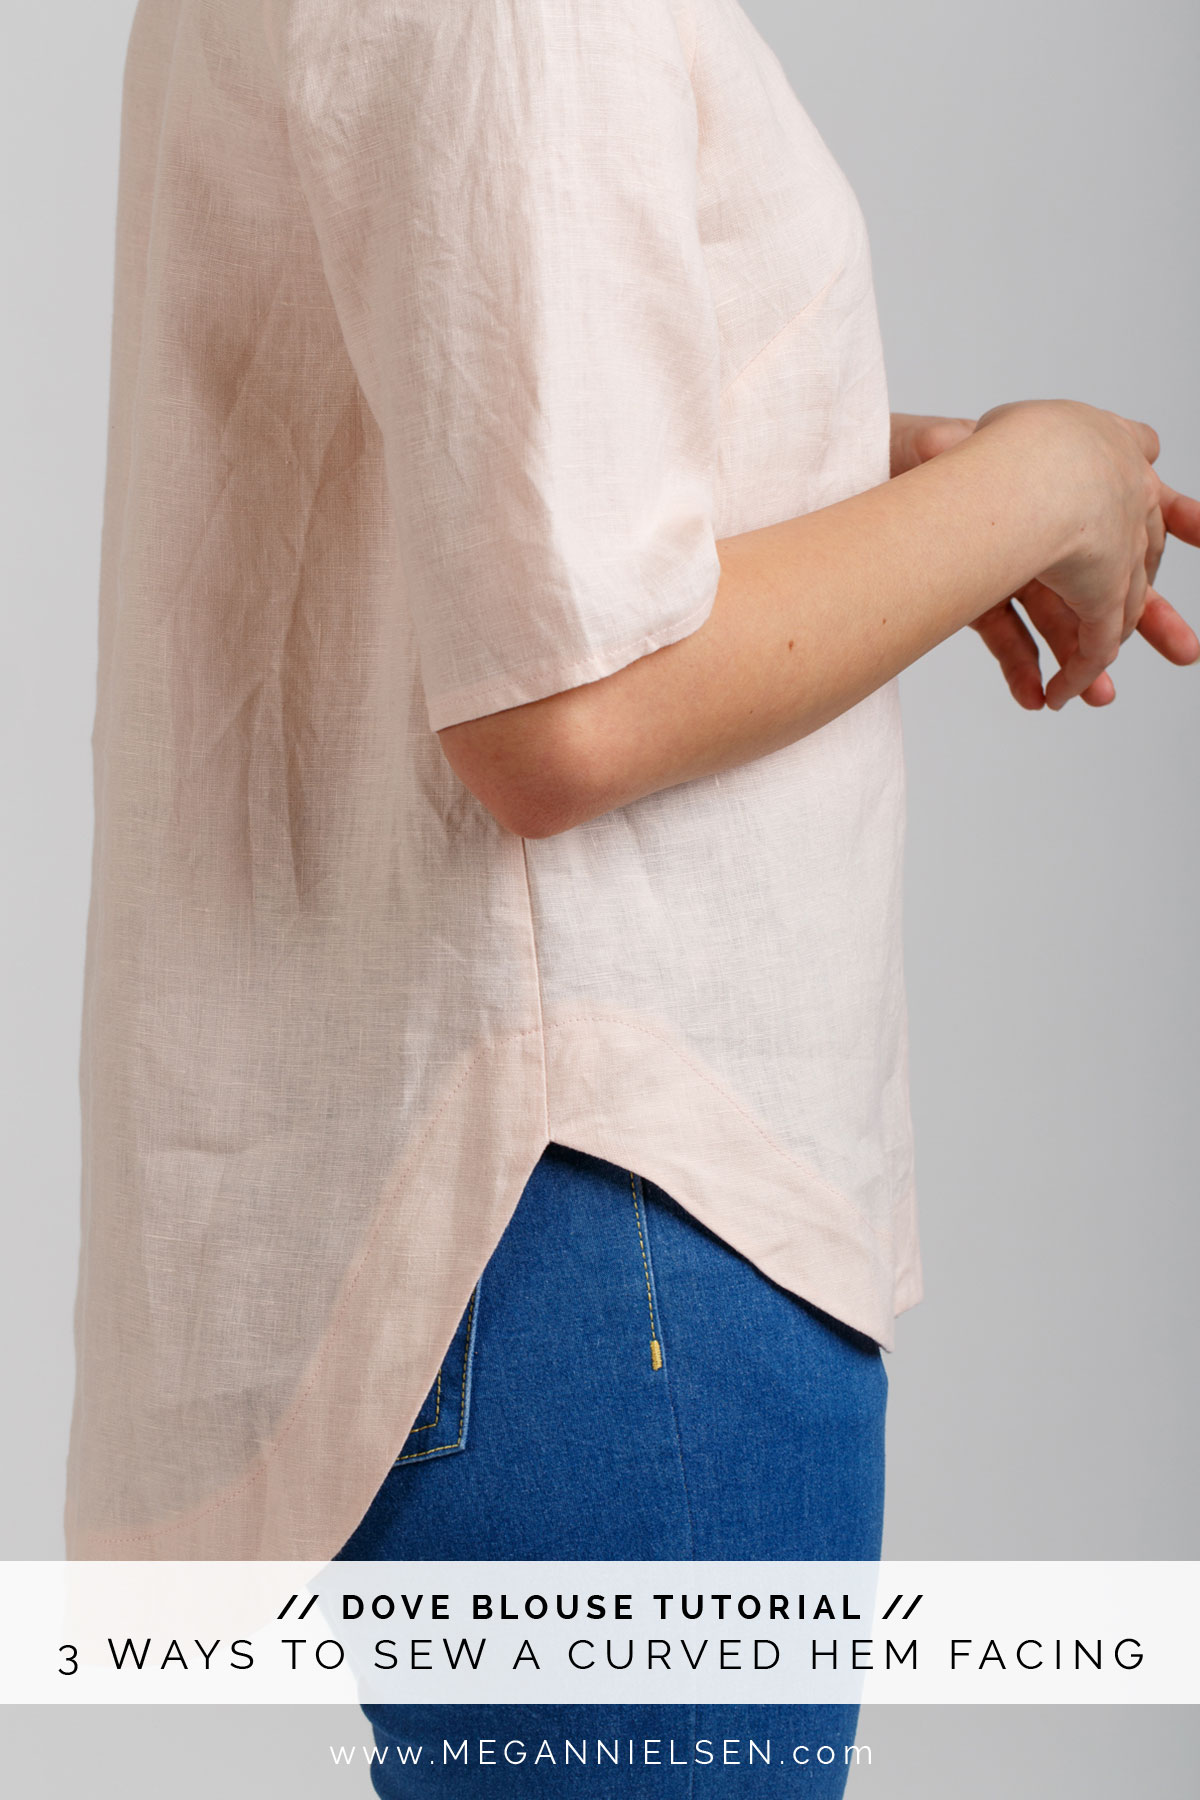 3 ways to sew a curved hem facing that are absolutely gorgeous! // Tutorial by Megan Nielsen Patterns shown on the Dove Blouse sewing pattern